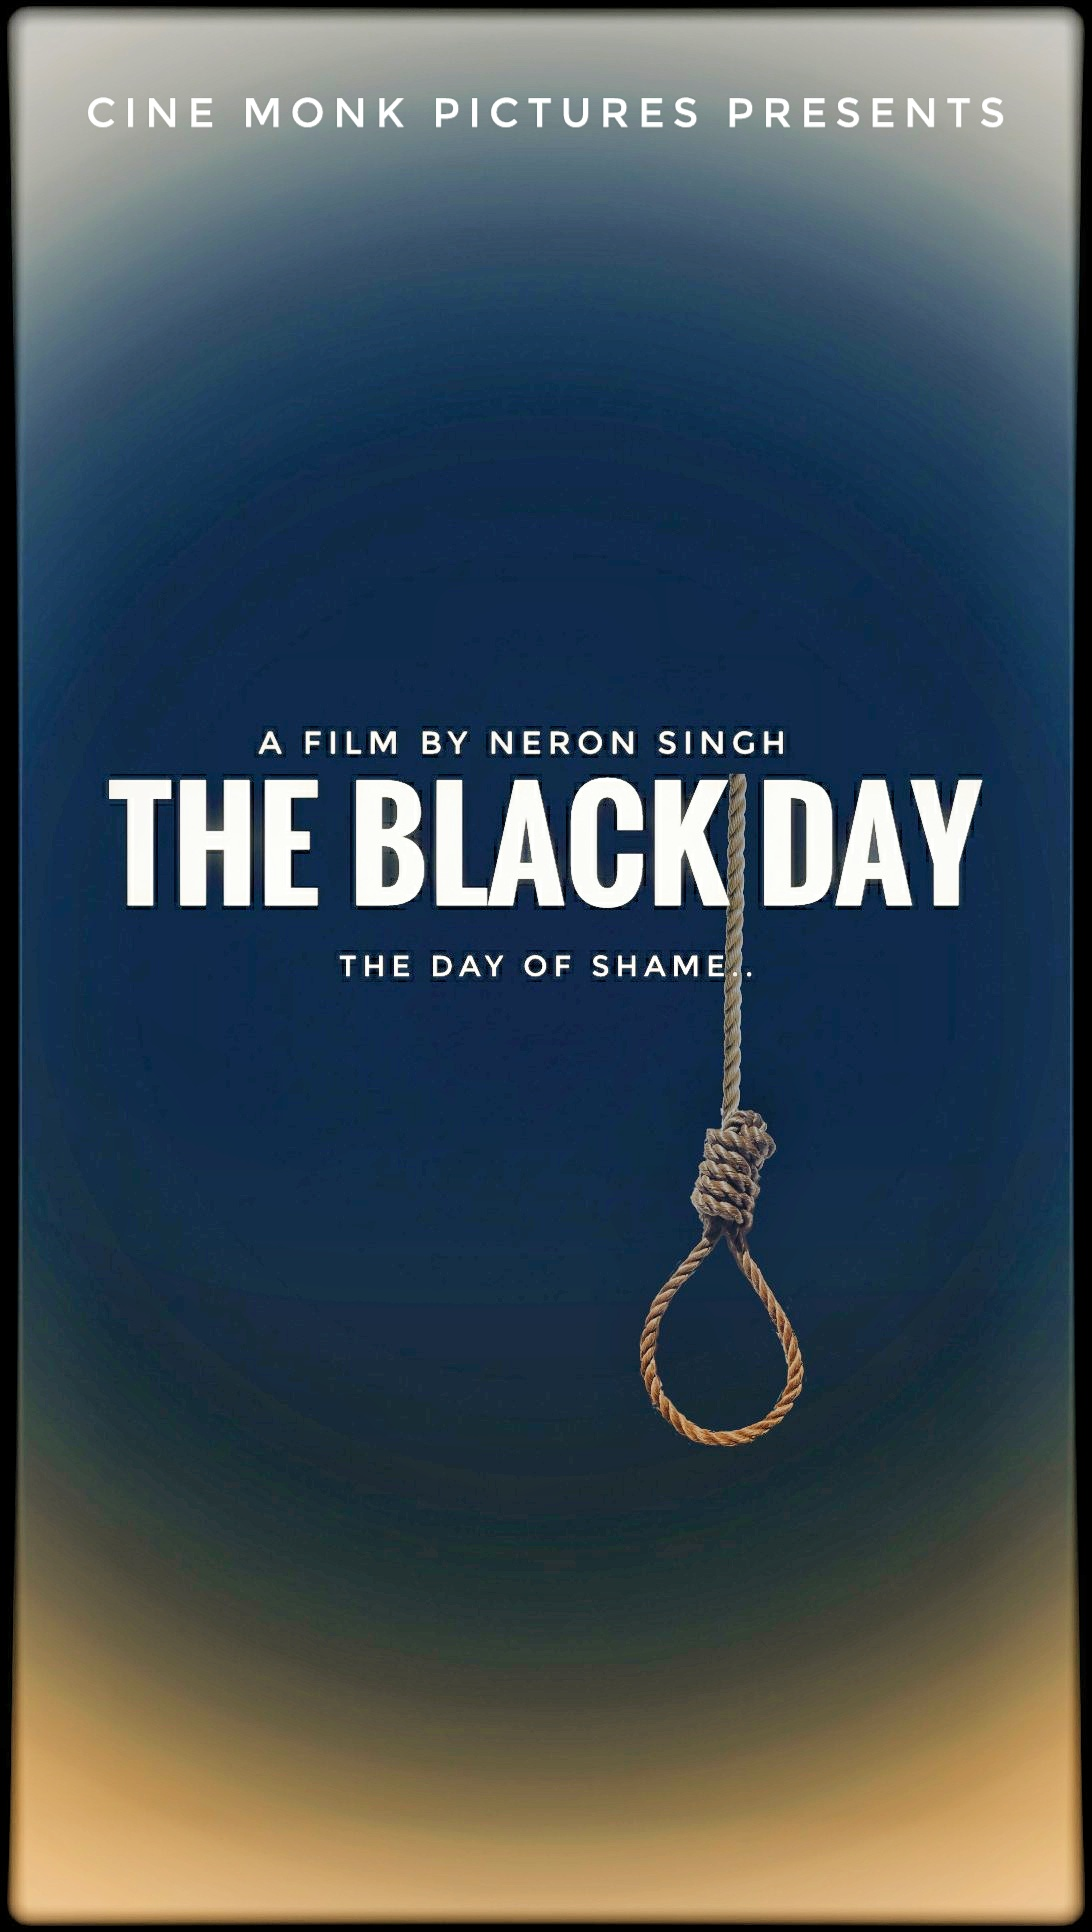 The Black Day The Day Of Shame 2017 Imdb